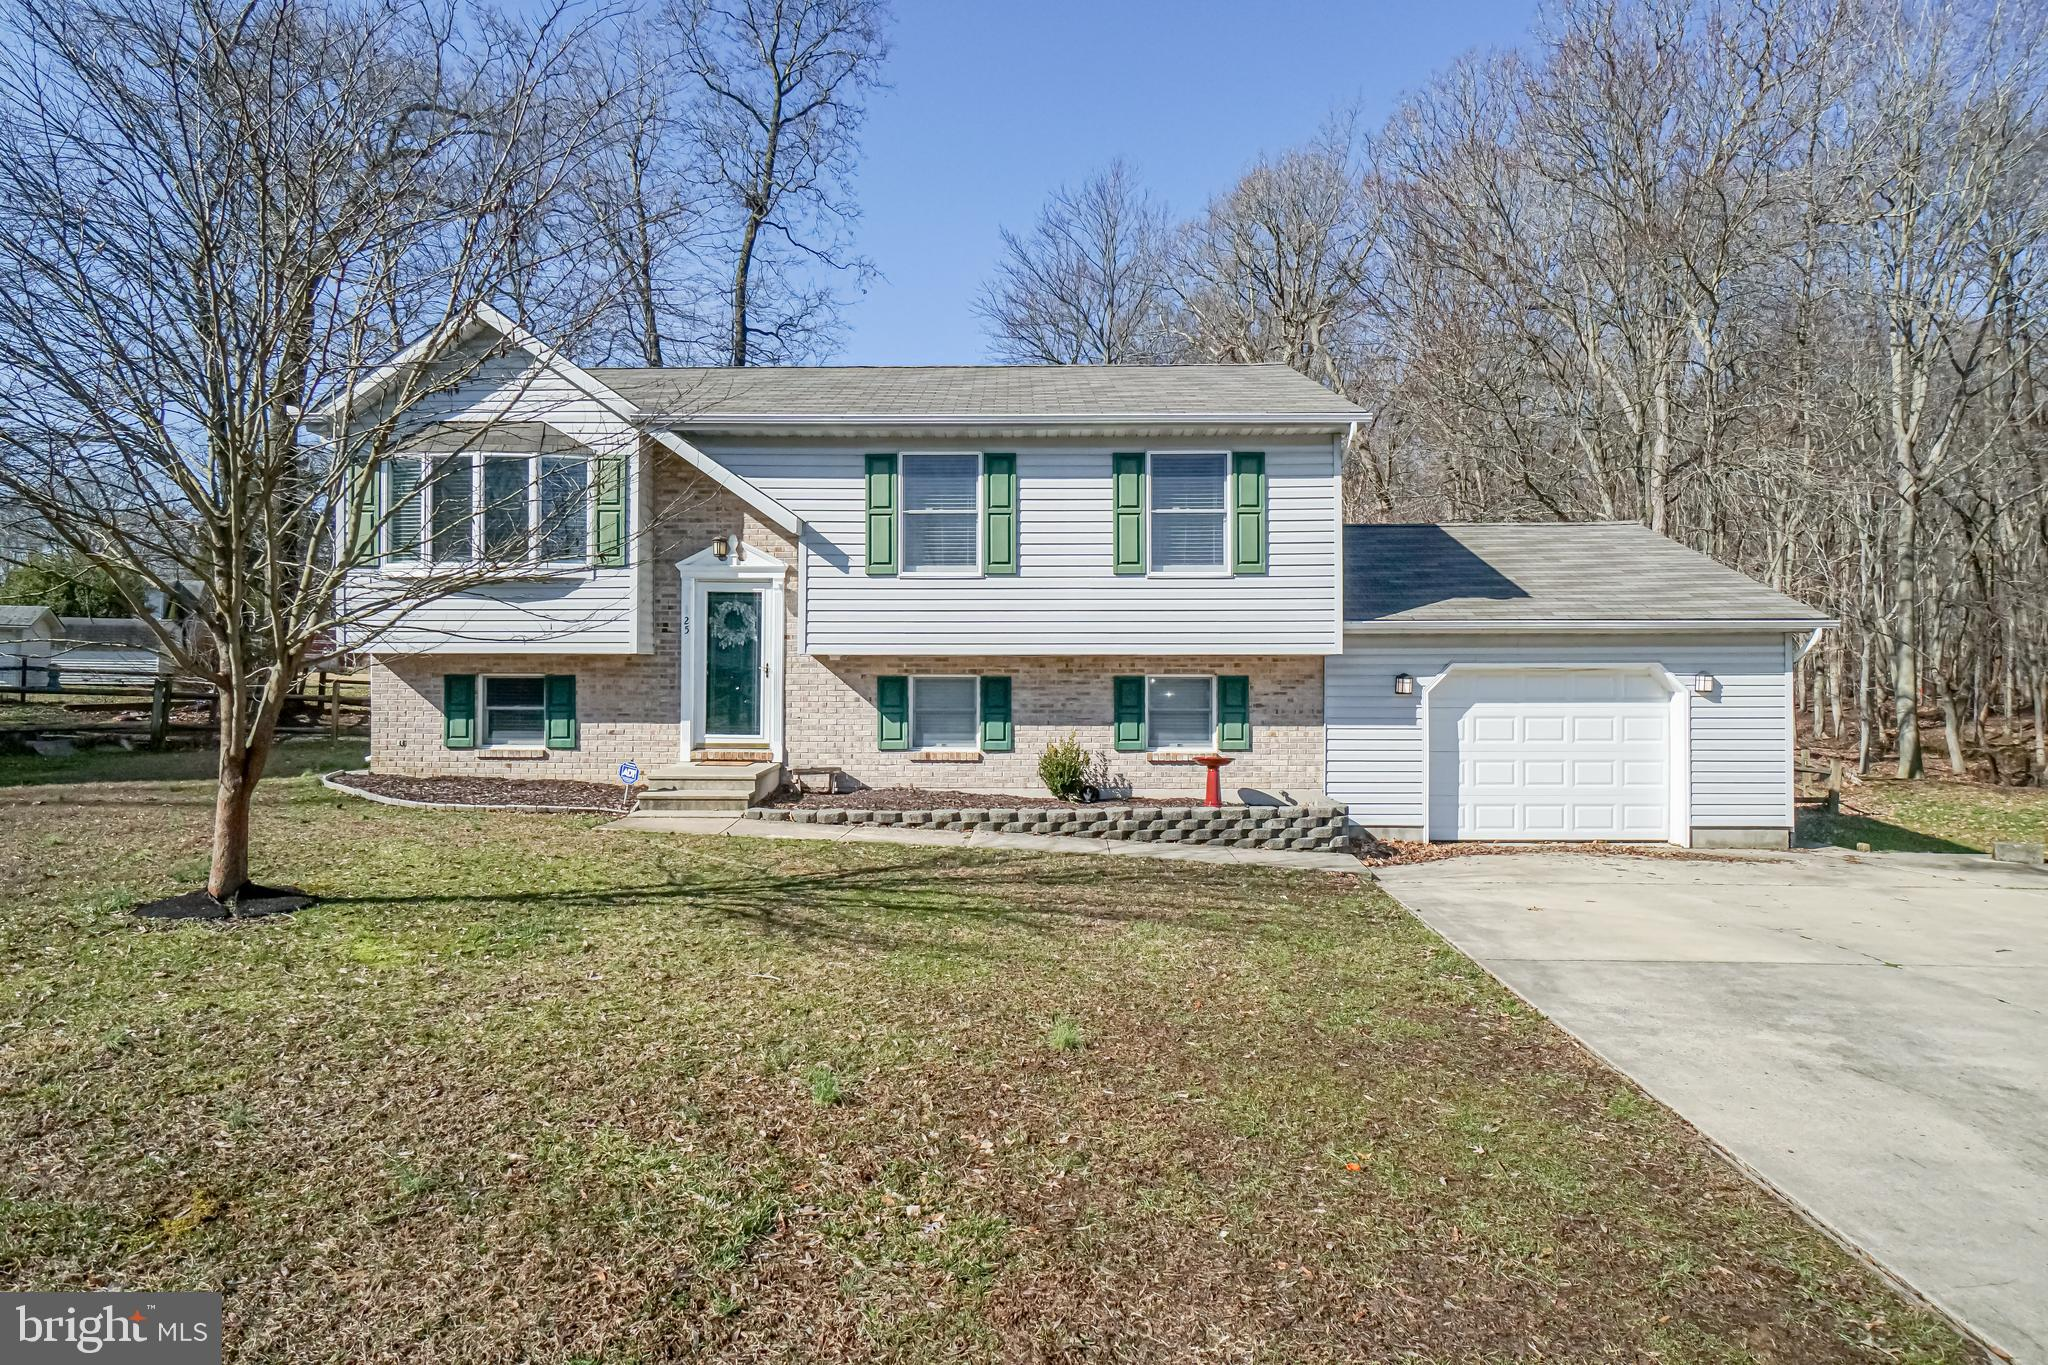 Welcome home to this 3 bedroom 2 full bath home located in a cul-de-sac in the desirable Northwoods